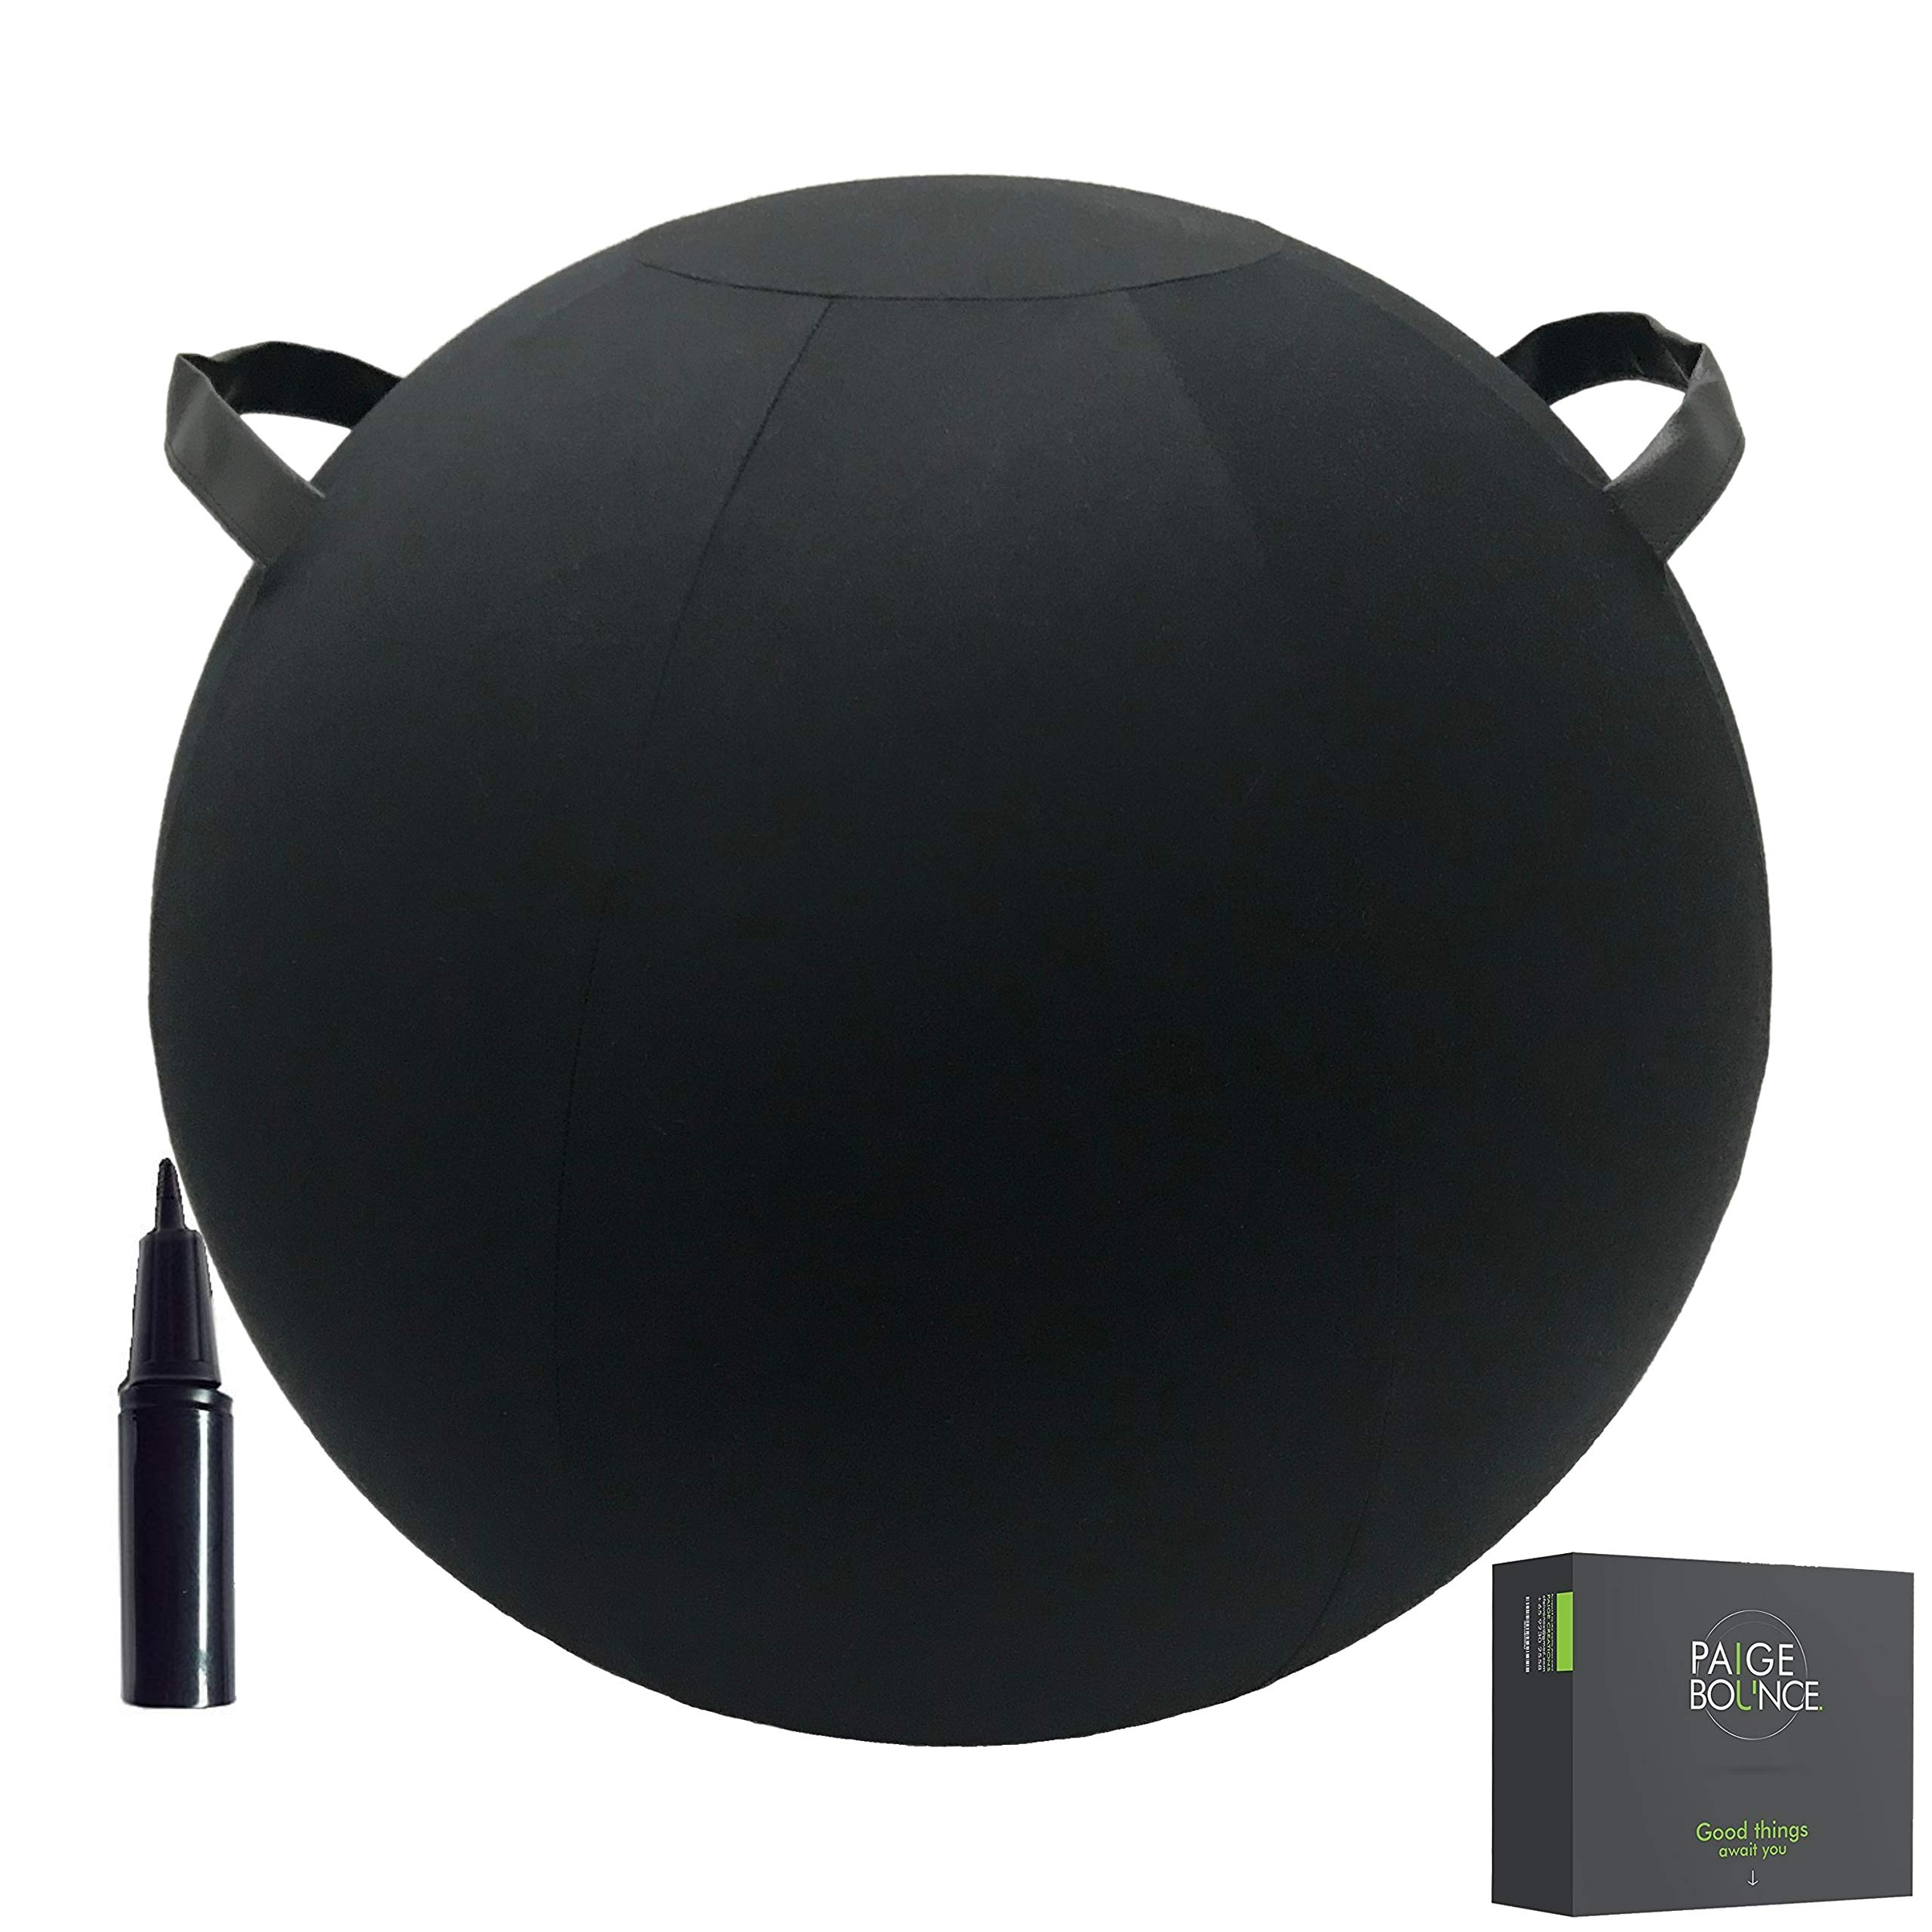 Sitting Ball Chair - Machine Washable 26-inch Firmer Exercise Ball Chair with Two Handles, Quick Pump Included - Self-Standing with Stability Beads Inside - for Birthing, Fitness, Pilates, Yoga